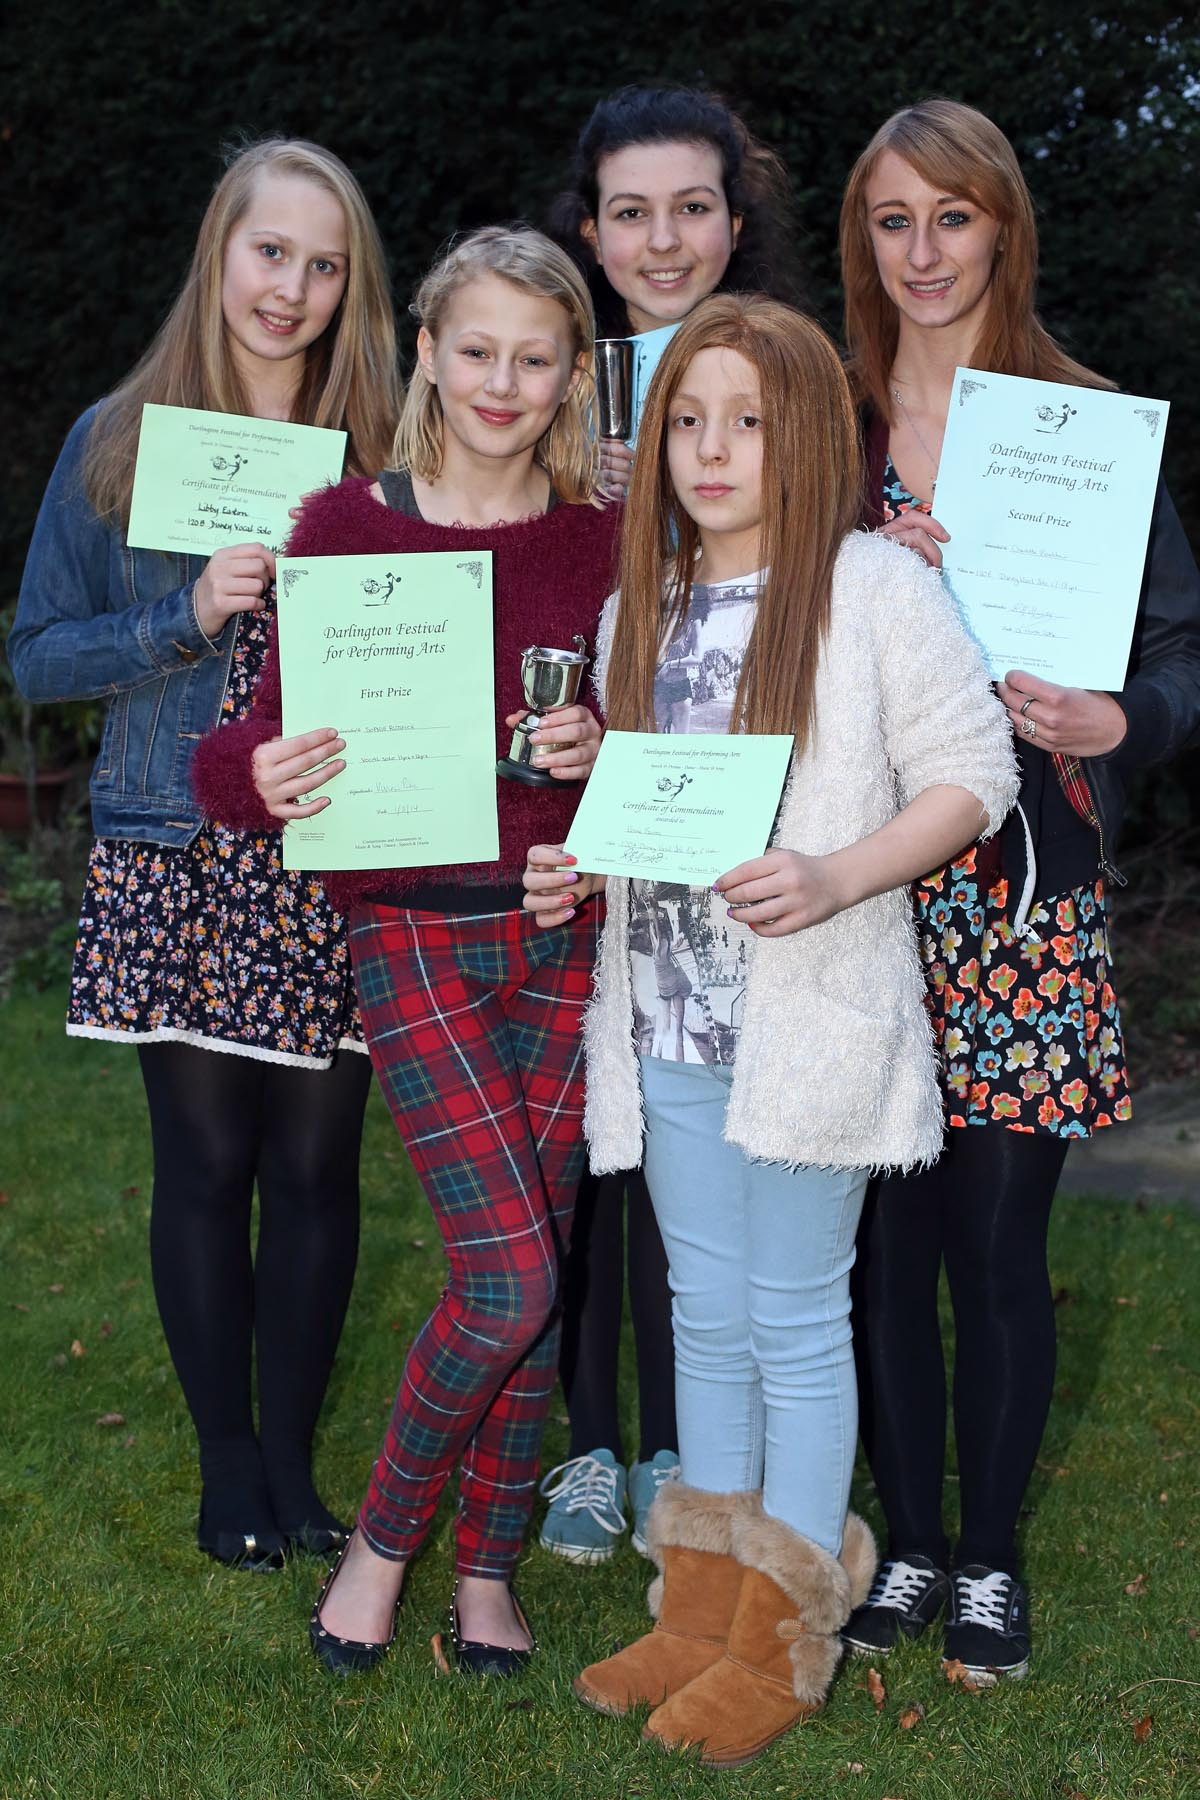 SING UP: Youngsters from the Viveca Bradshaw singing academy who performed well at the recent Darlington Performing Arts Festival. From left: Liberty Easton, 11, Sophie Riddick, 11, Grace Robinson, 15, Vienna Barras, ten, and Charlotte Bradshaw, 17.